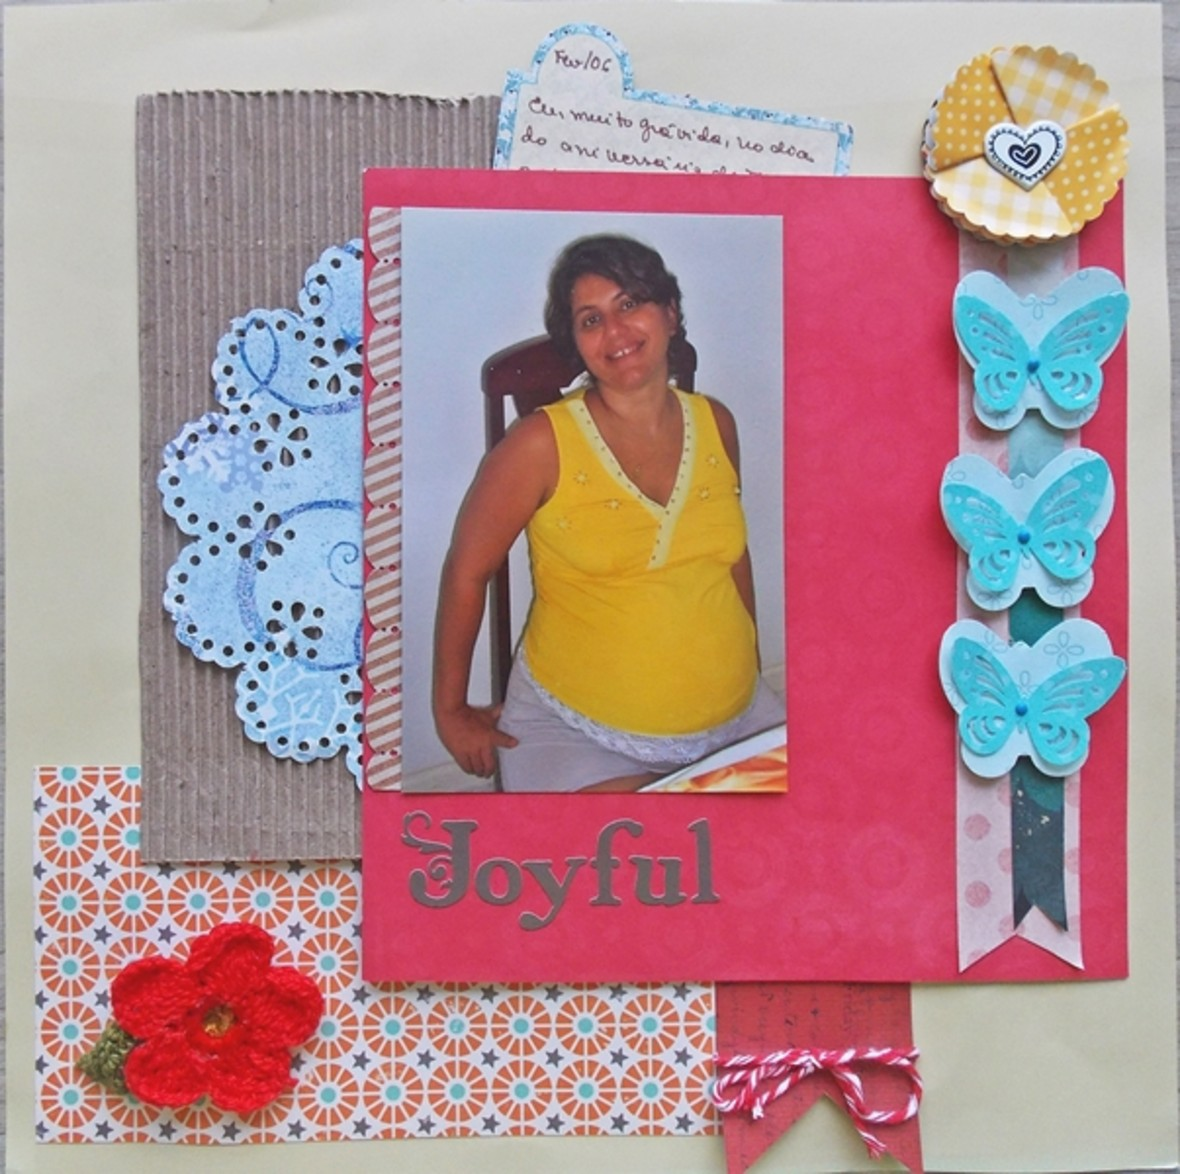 Joyful menor original